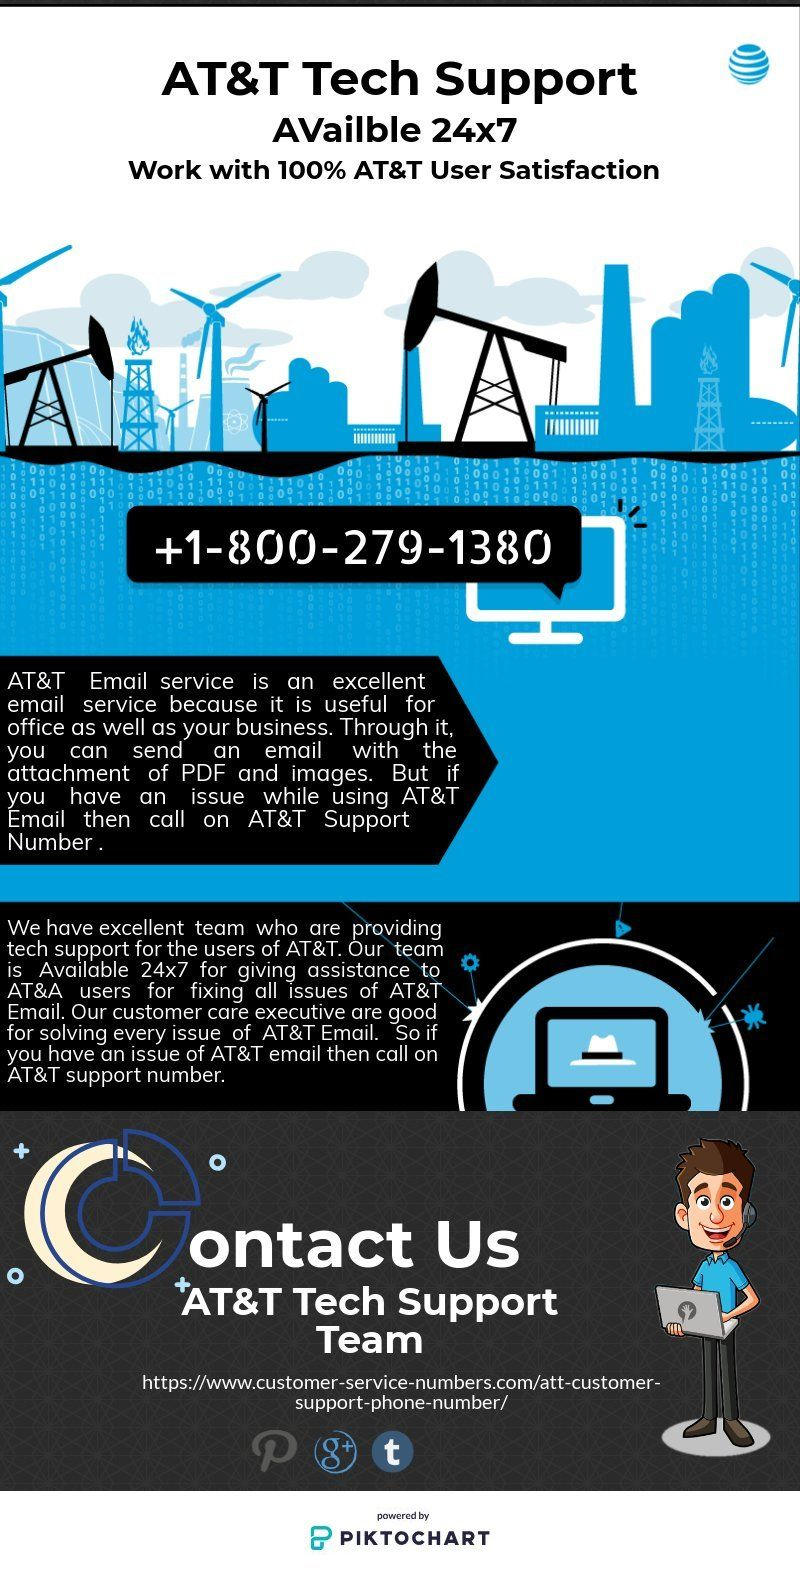 We are providing technical support regarding AT&T Email